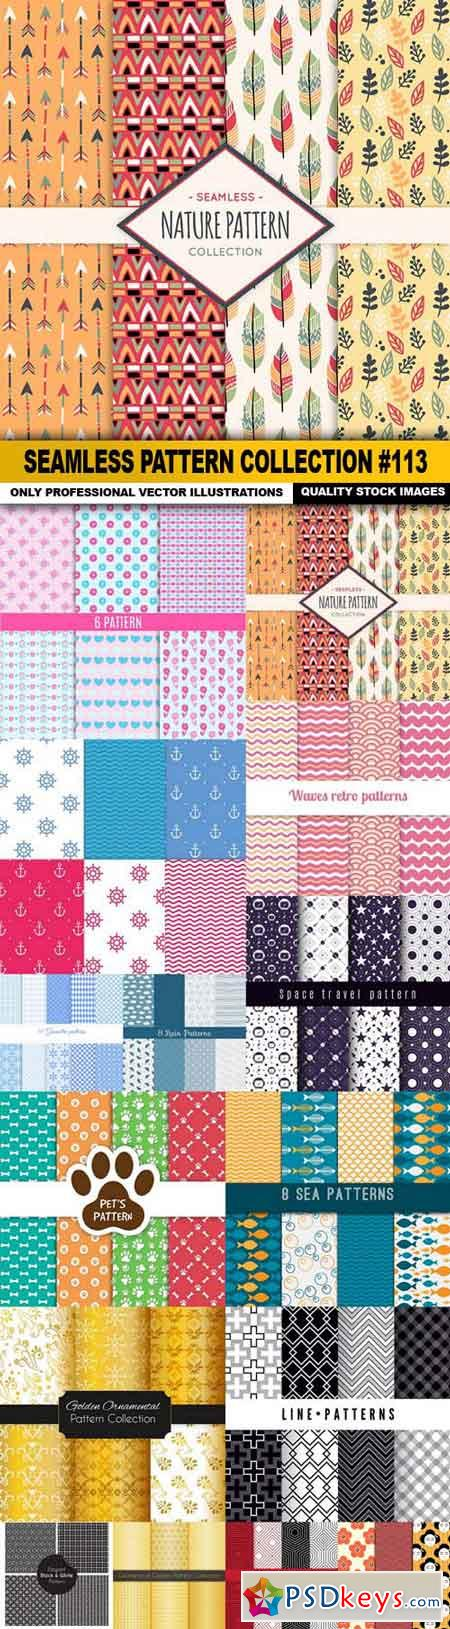 Seamless Pattern Collection #113 - 15 Vector